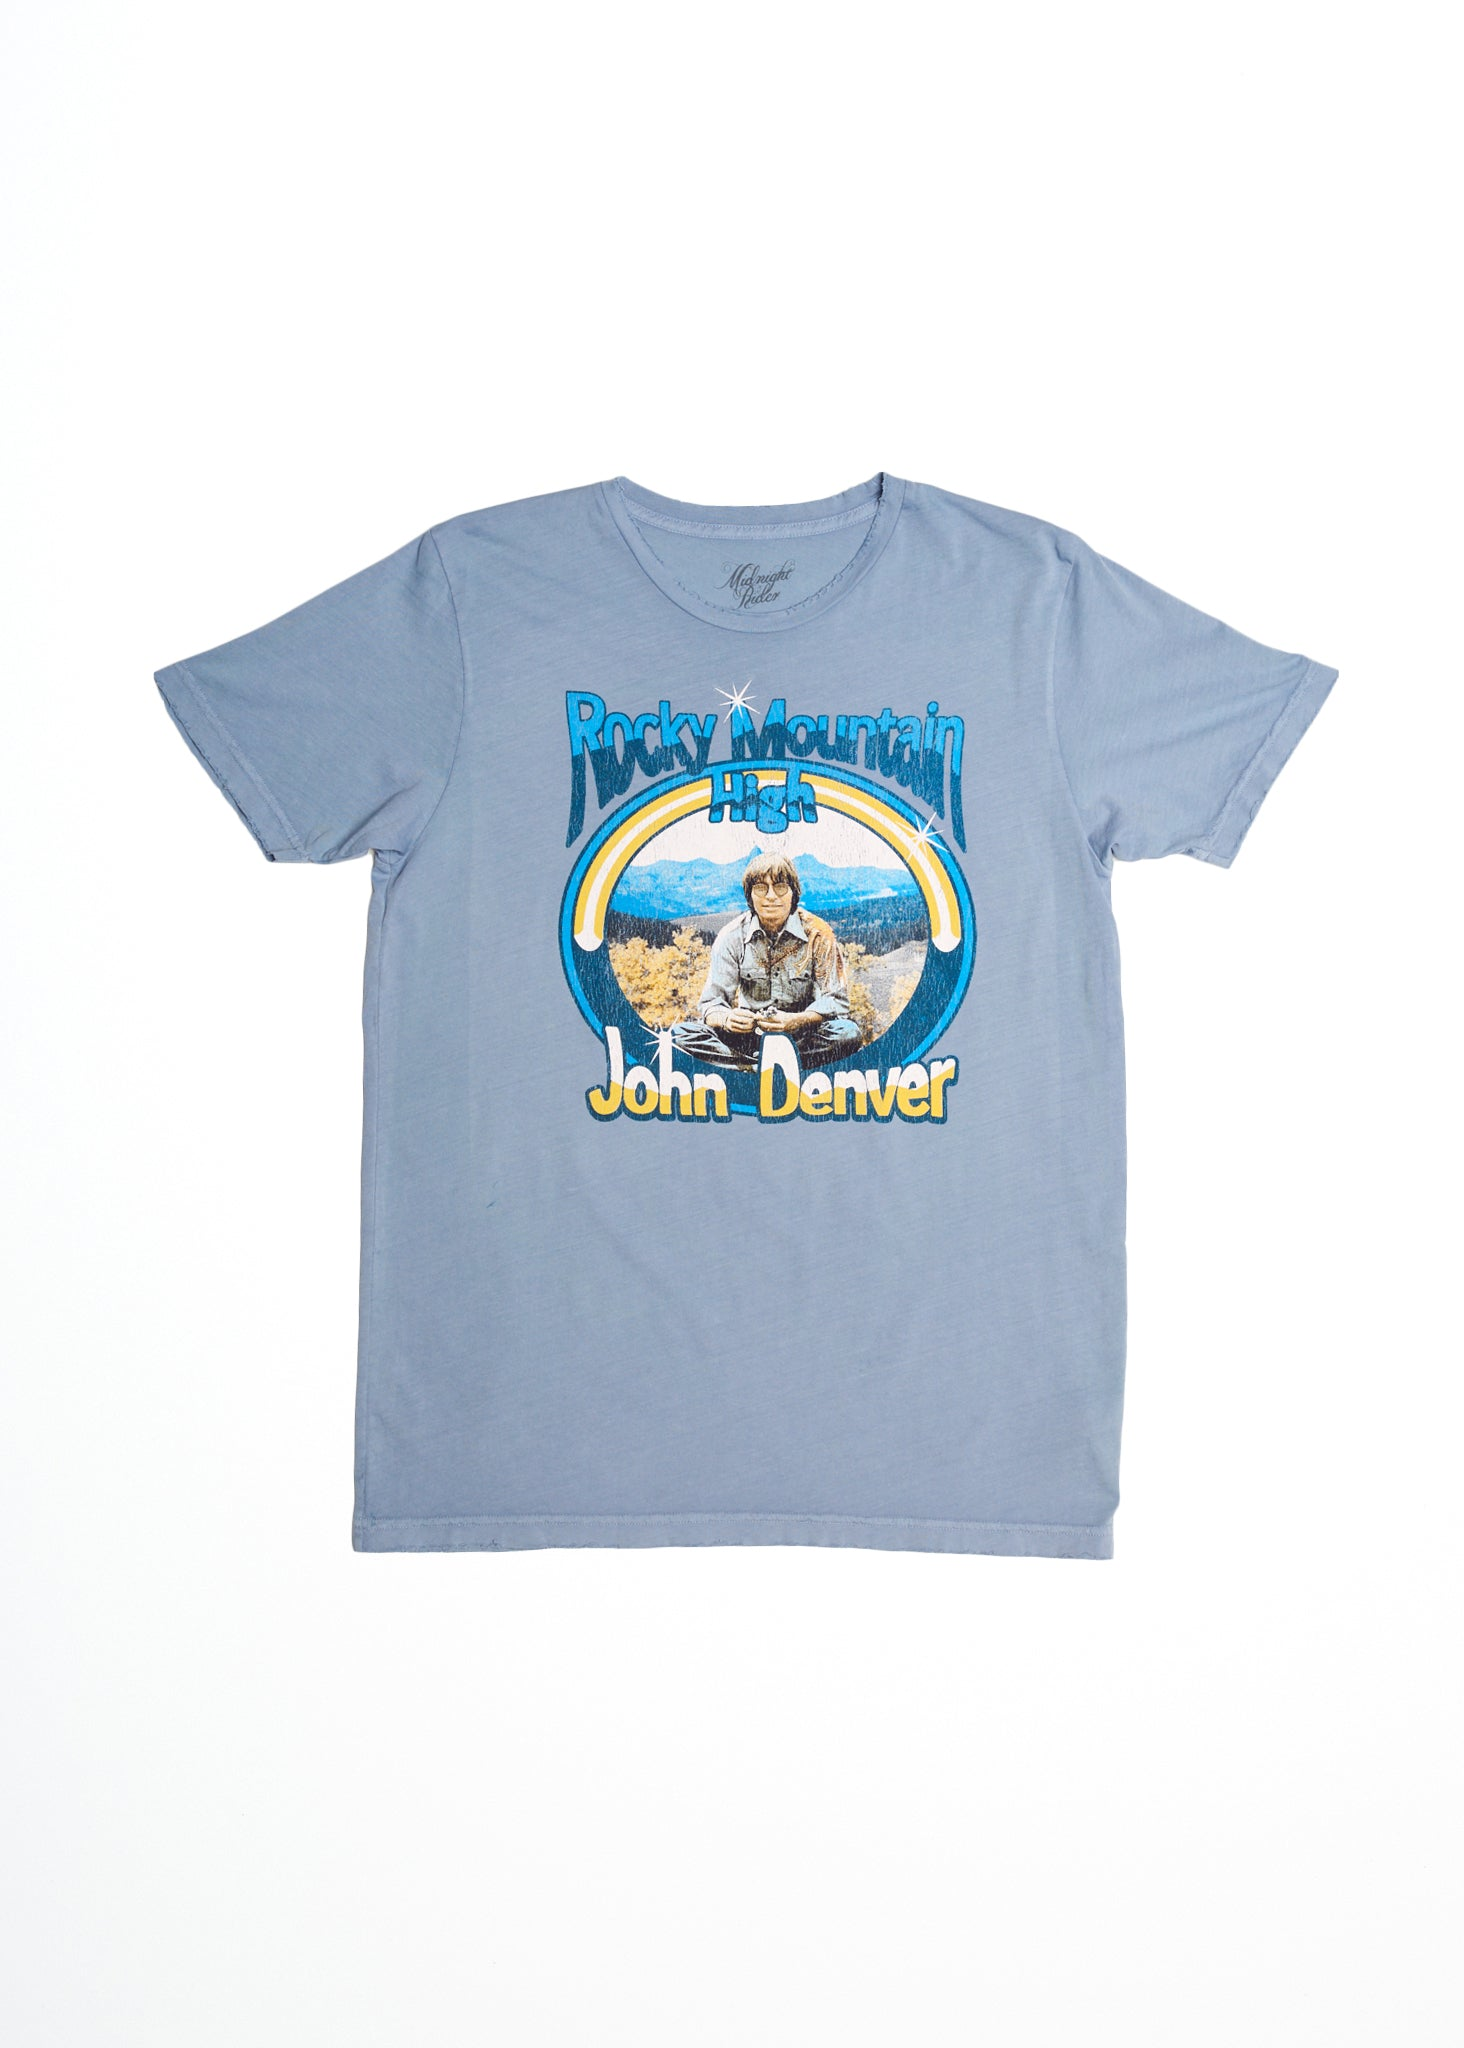 John Denver Rocky Mountain High Men's Tee Shirt - Denim Blue